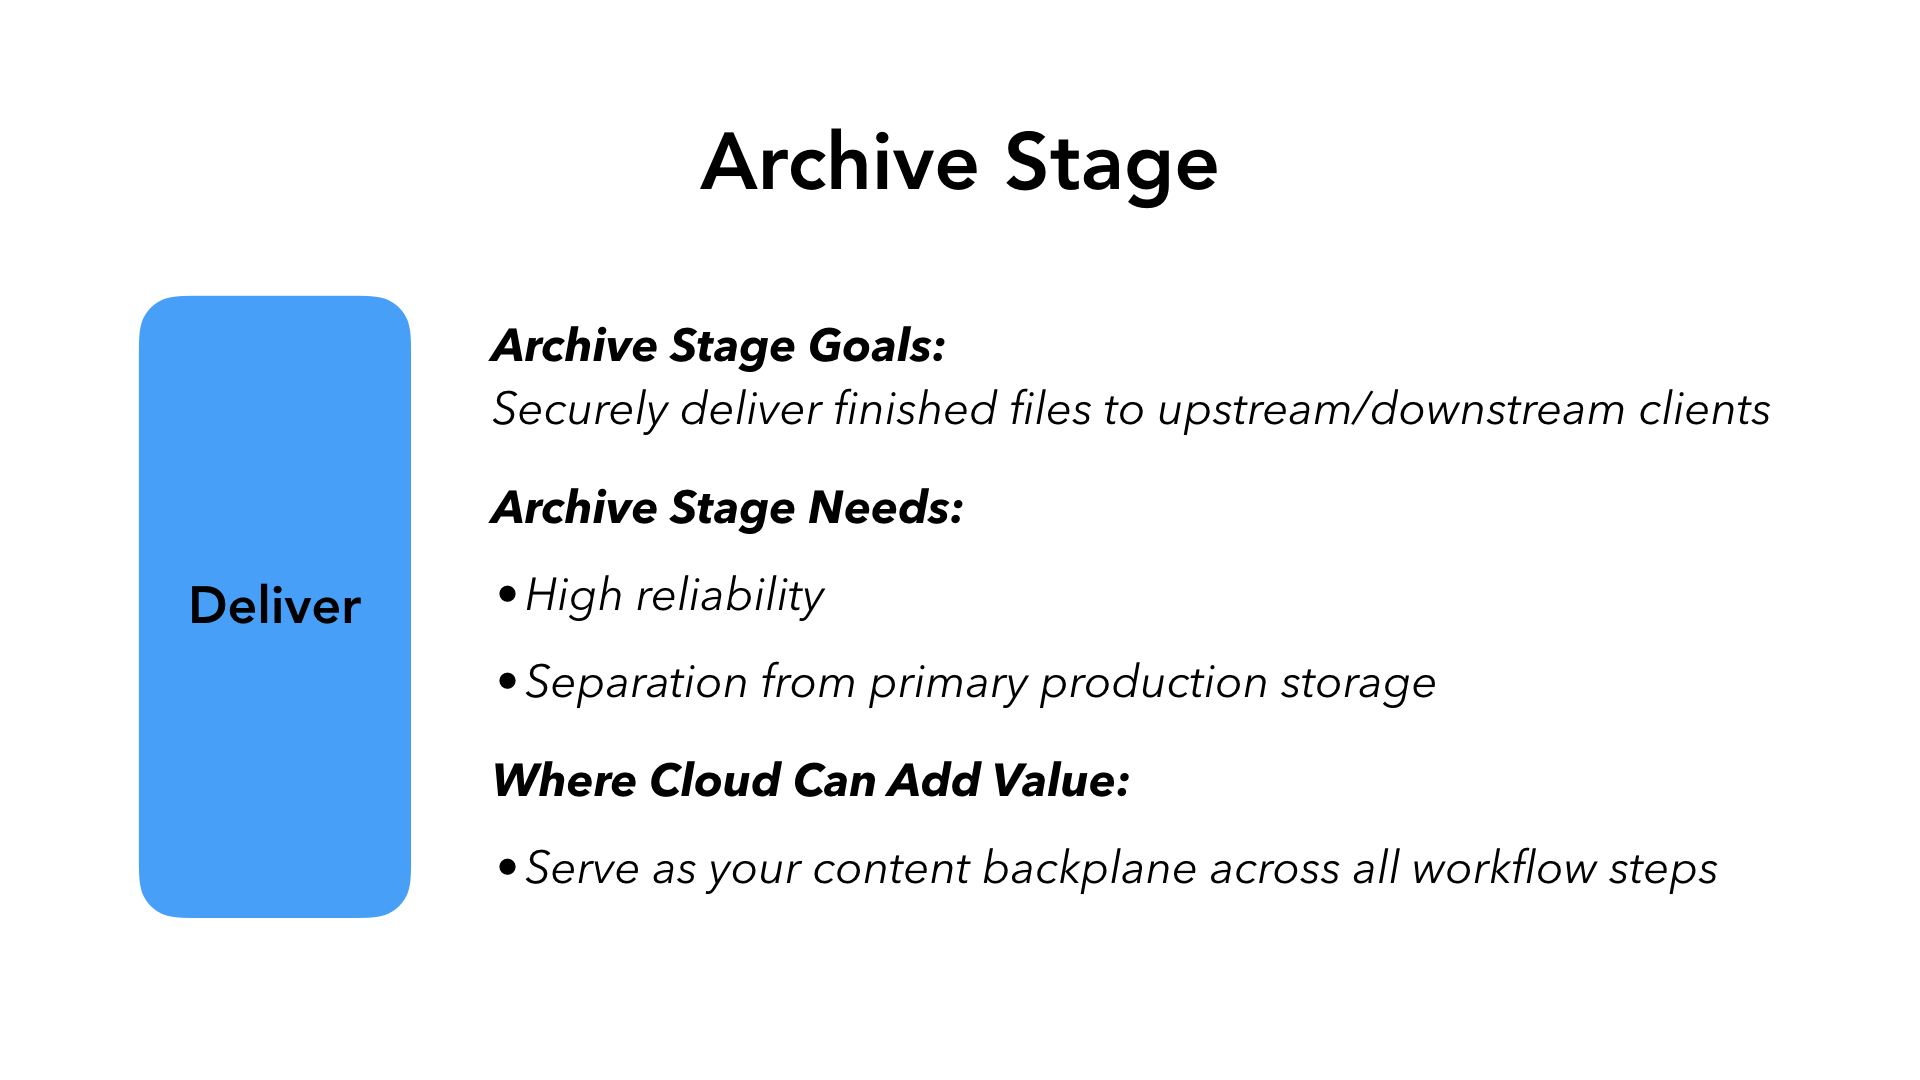 Archive Stage - Archive Stage Goals: Securely deliver finished files to upstream/downstream clients. Archive Stage Needs: High reliability. Separation from primary prodcution storage. Where Cloud Can Add Value: Serve as your content backplane across all workflow steps.